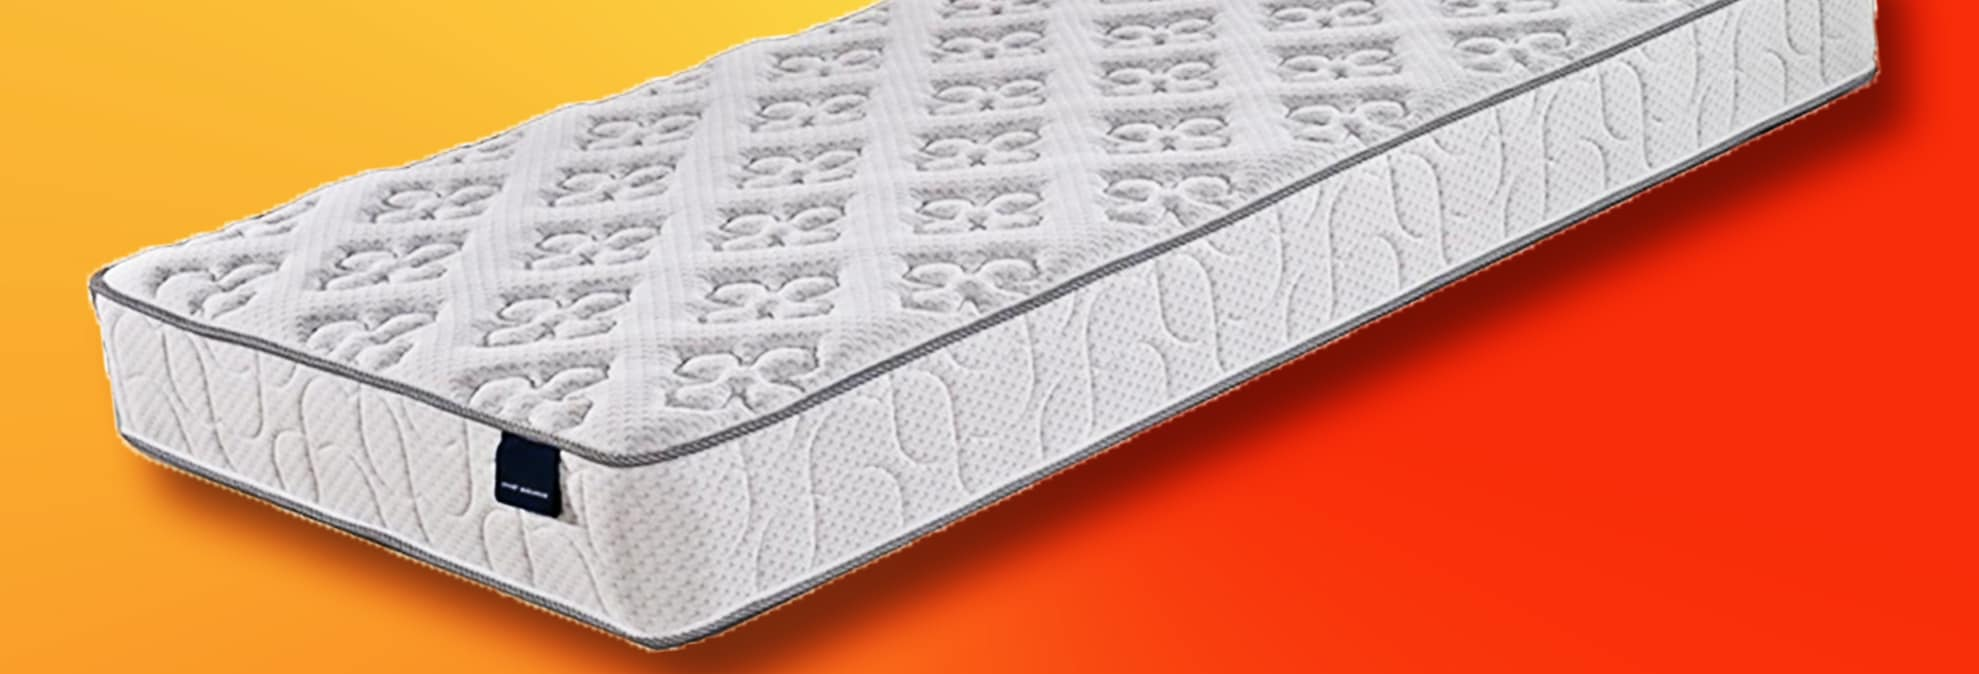 home life mattresses recalled due to fire risk consumer reports